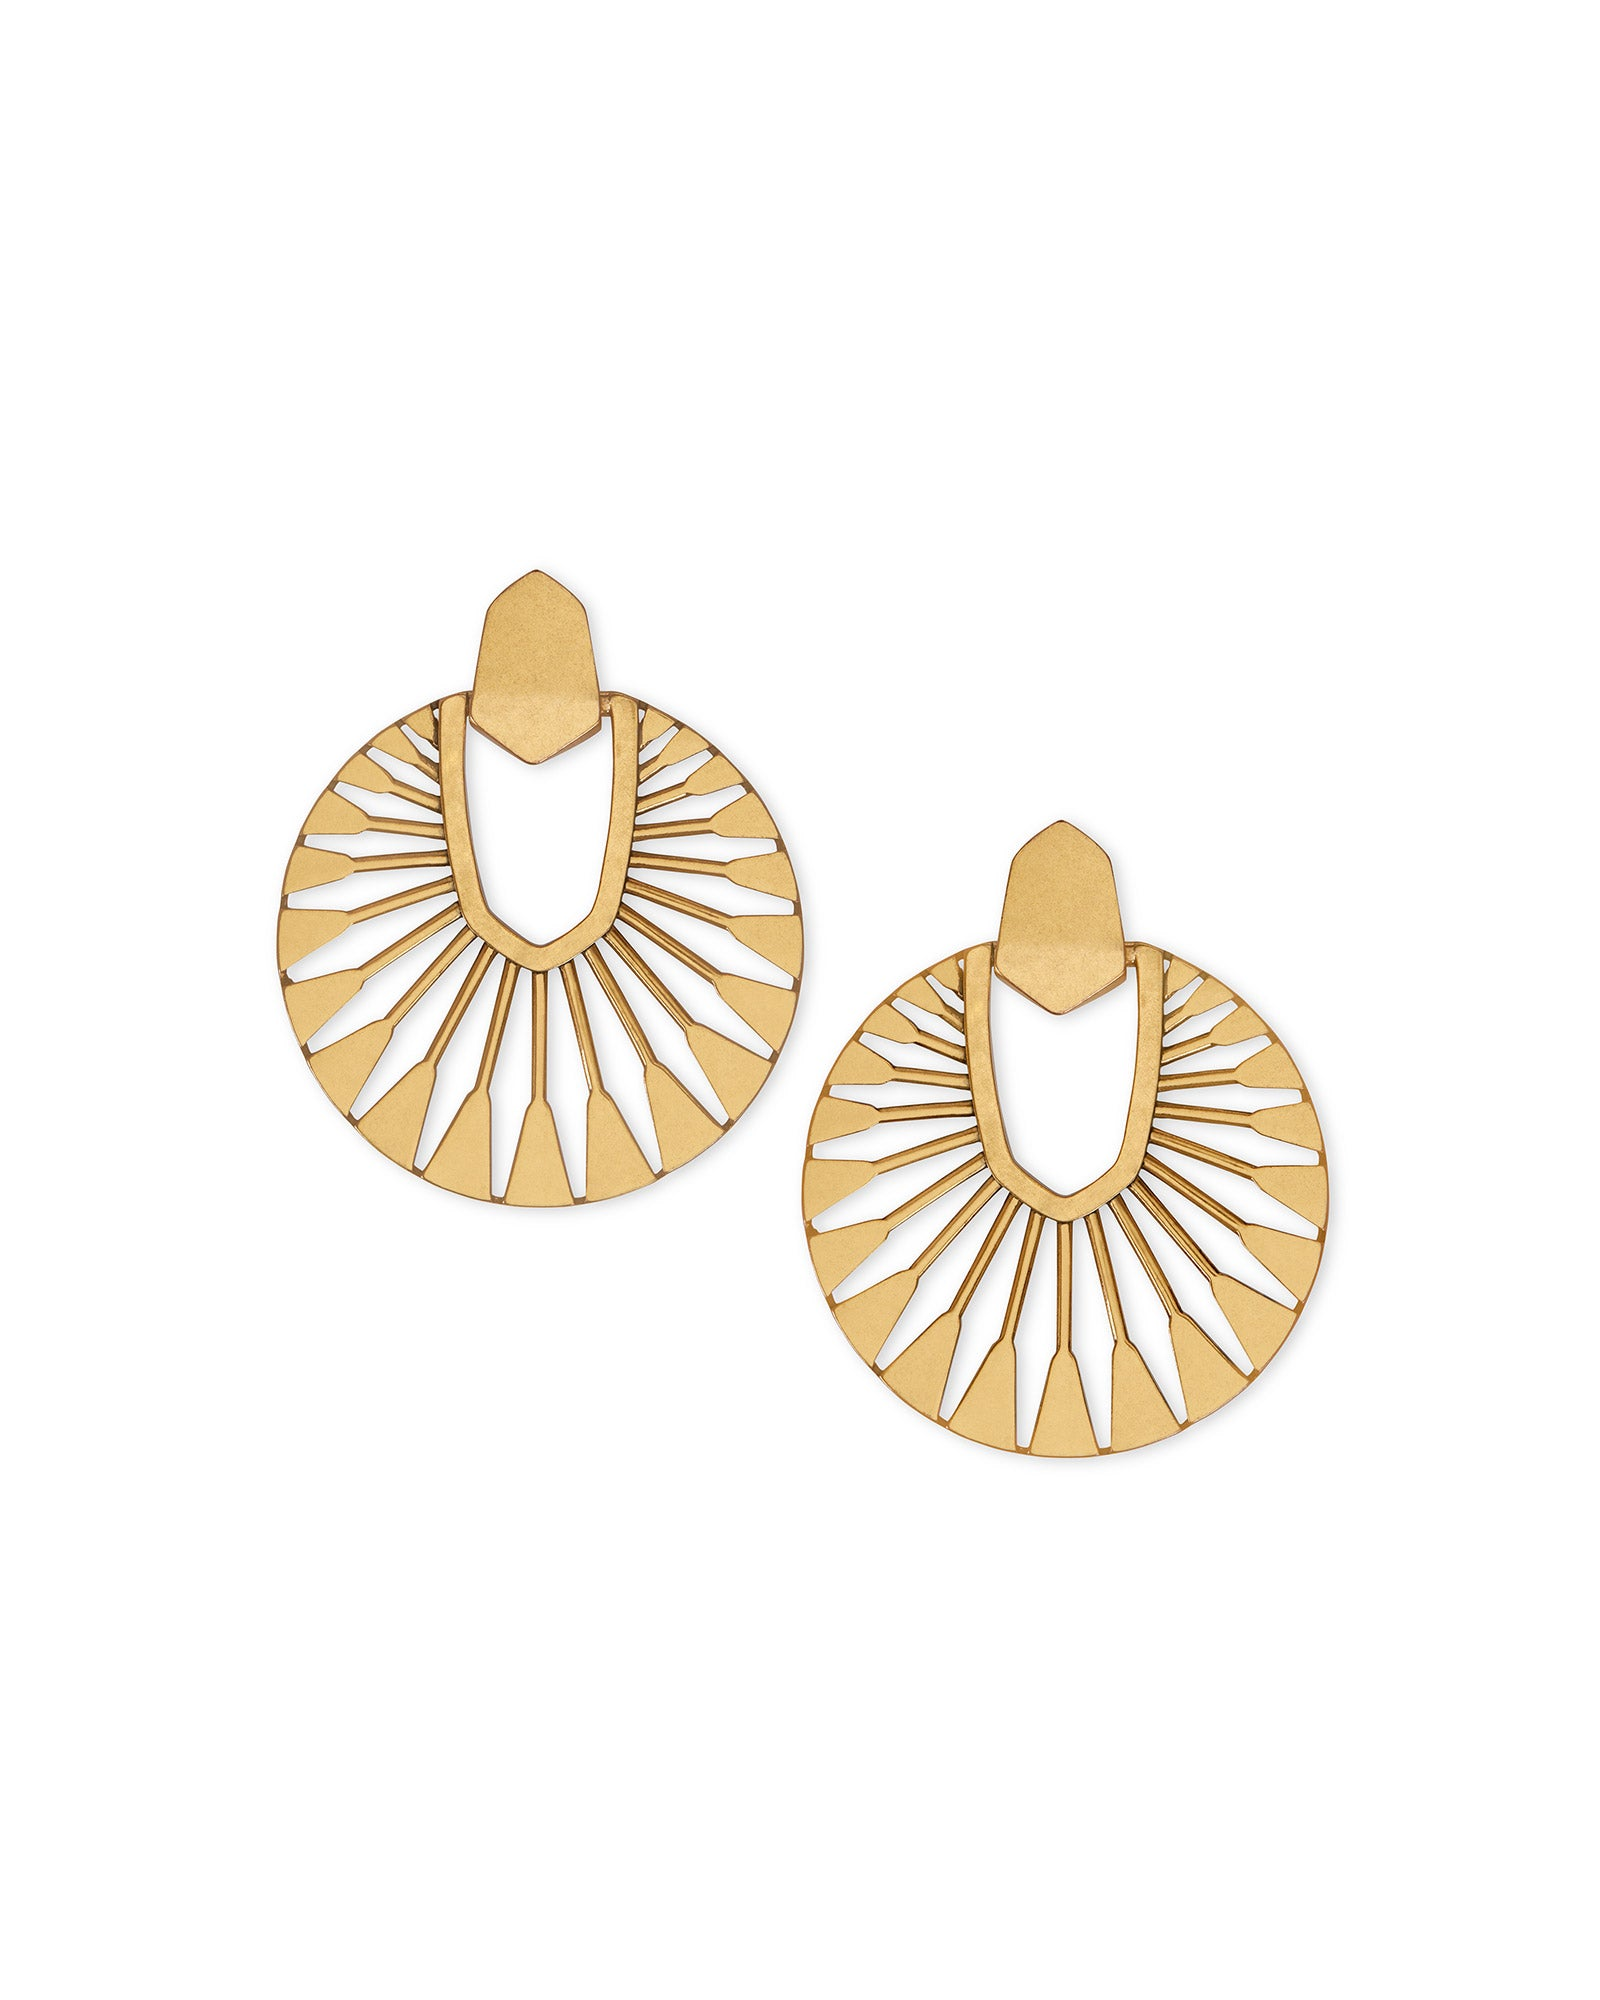 Didi Sunburst Statement Earrings in Vintage Gold